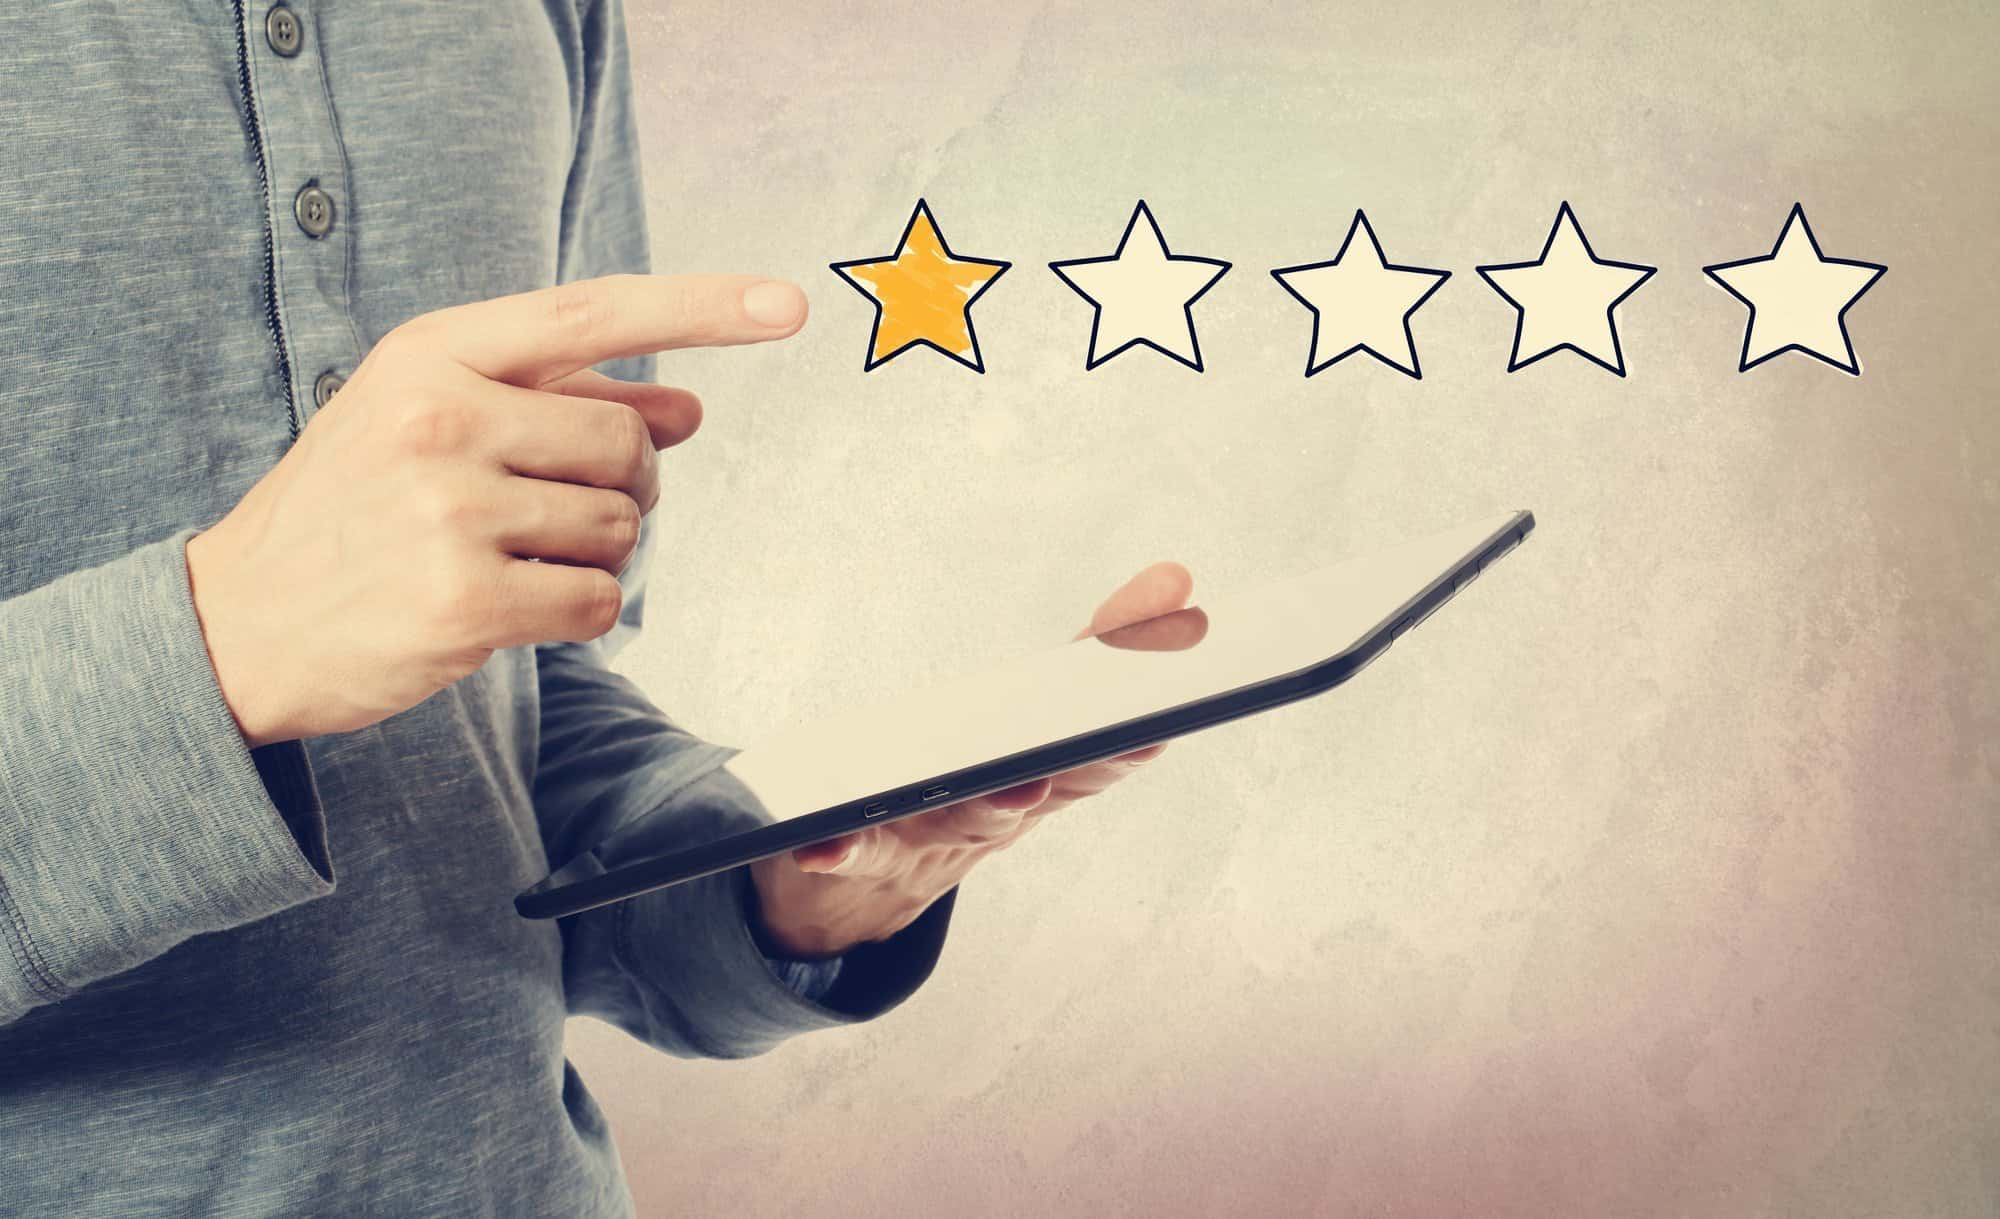 Why Negative Online Reviews Aren't as Trustworthy as You May Think